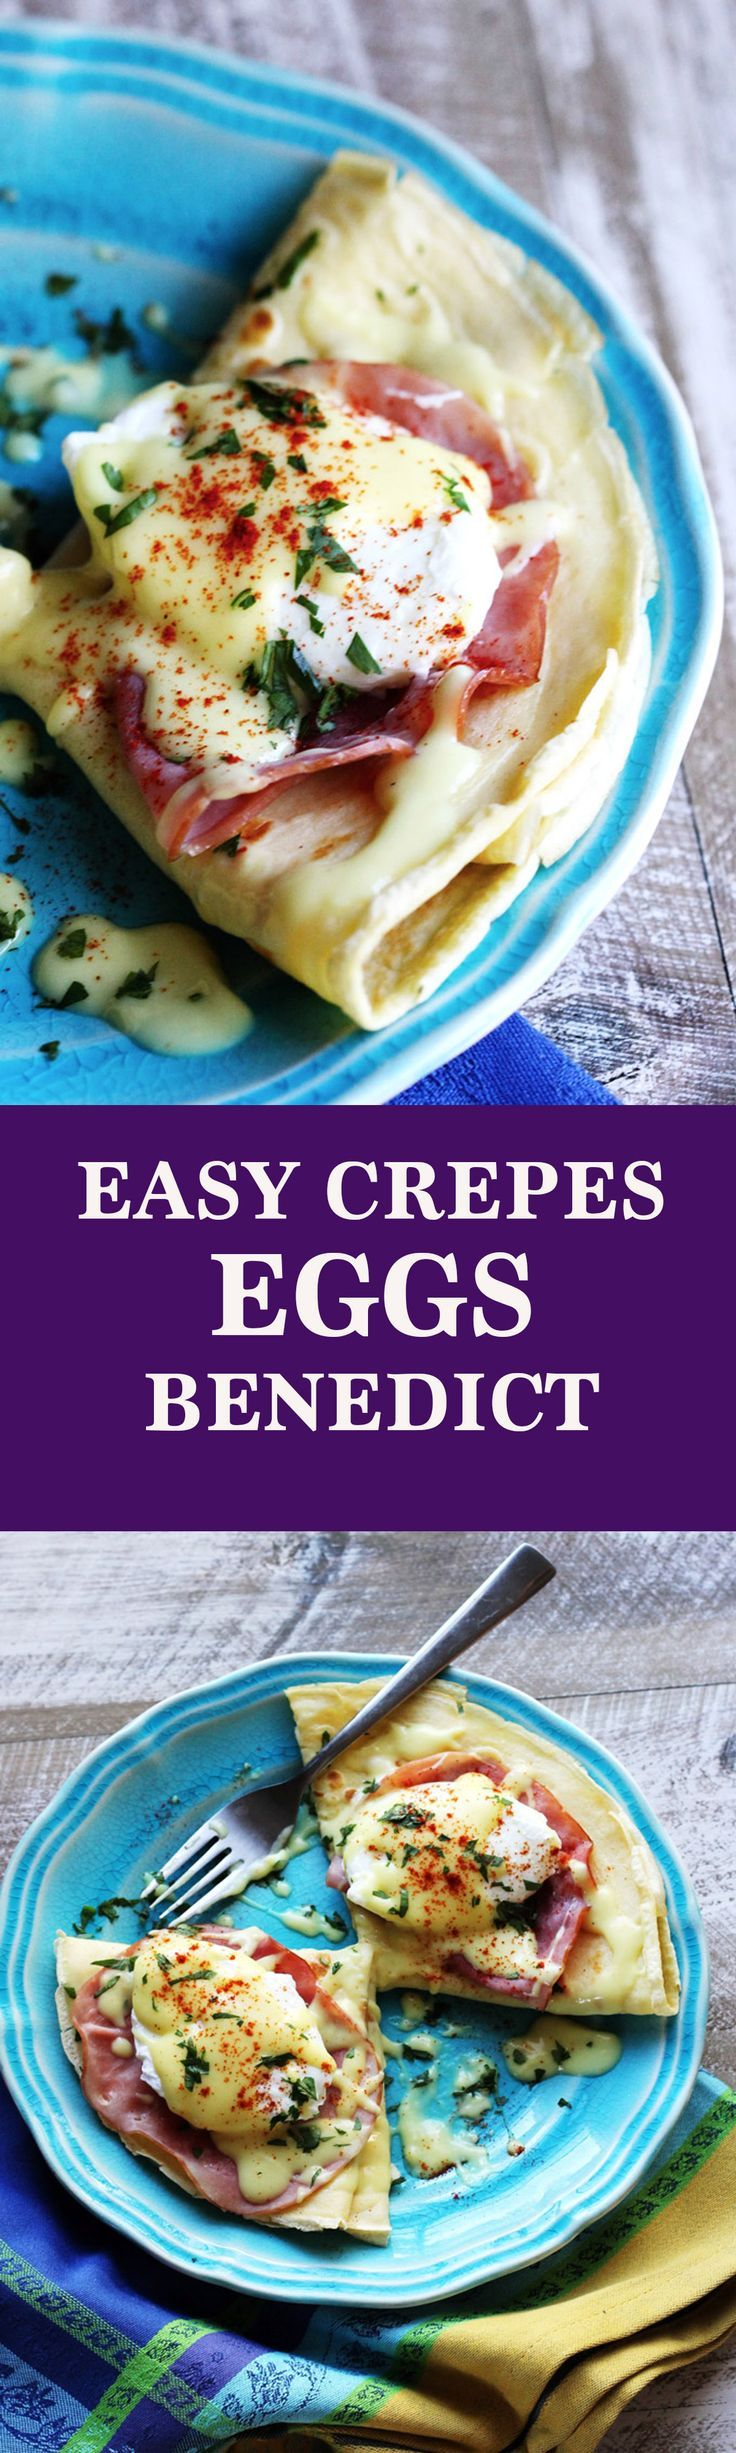 Easy Crepes Eggs Benedict